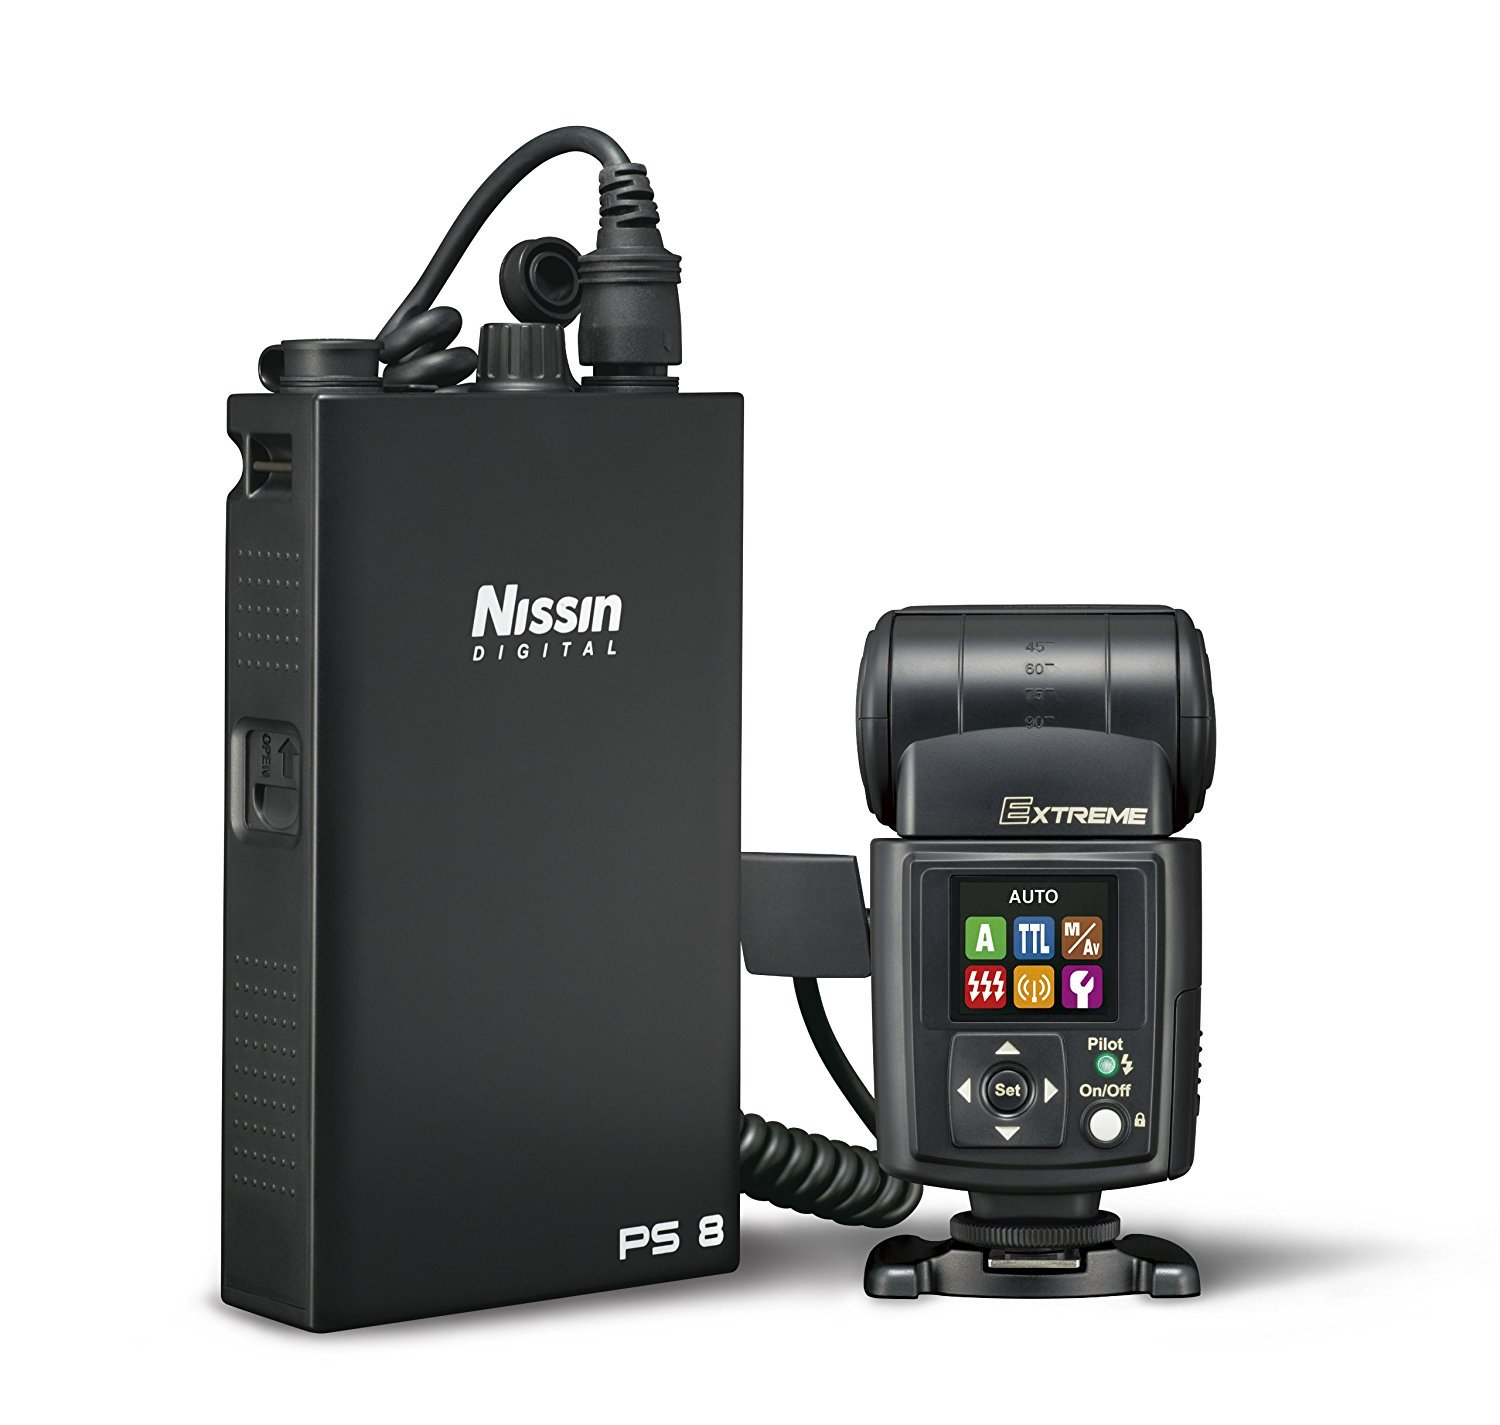 Nissin i60A Air Flash, Wireless 2.4GHz Nissin Air System Receiver For Nikon - Includes Nissin USA 2 Year Warranty by Nissin